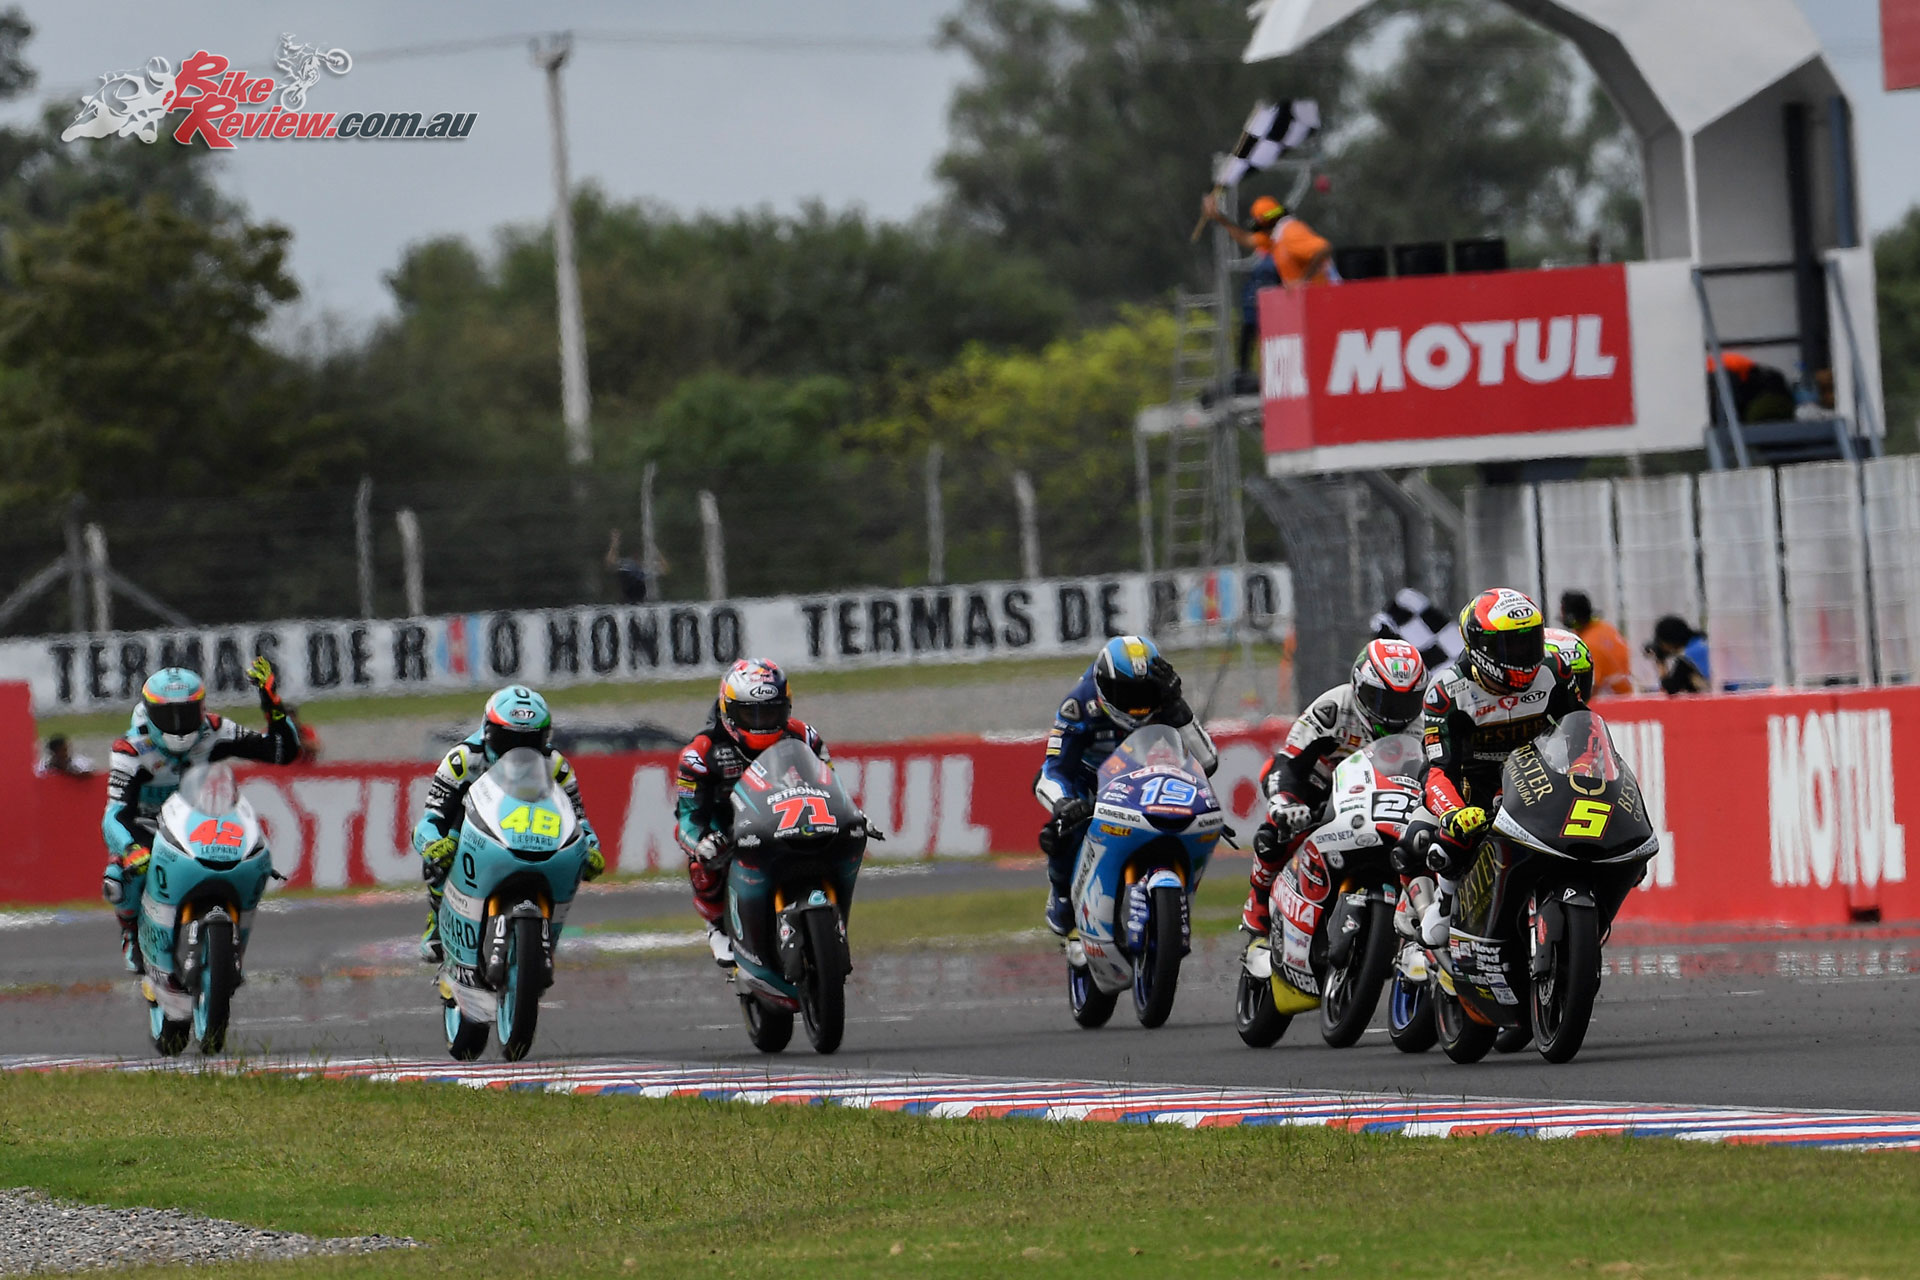 Jaume Masia leads the Moto3 pack